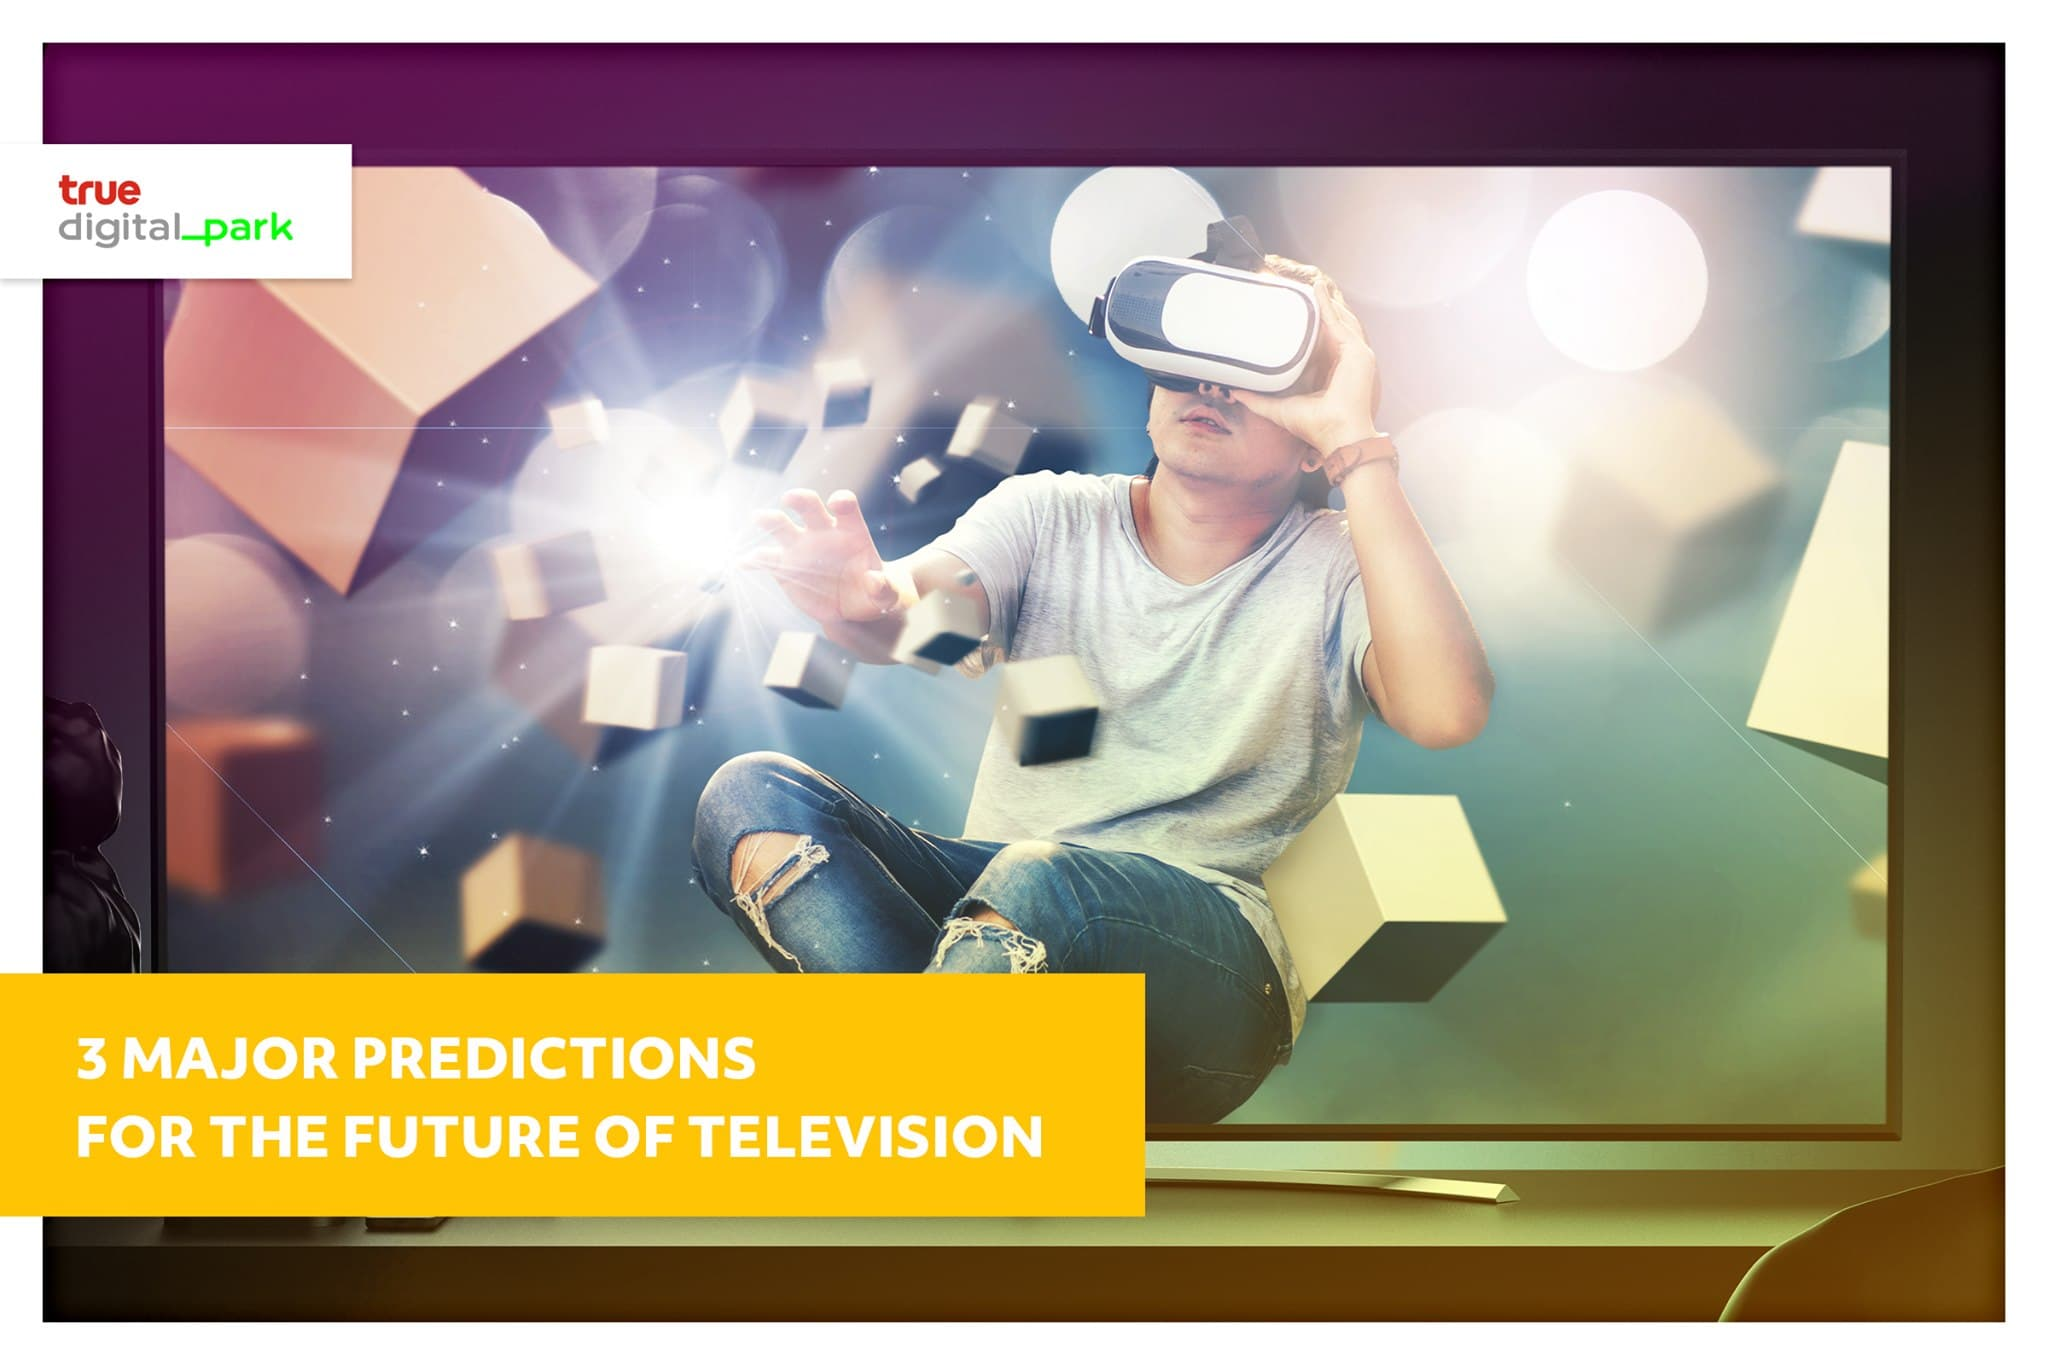 3 Major Predictions for the Future of Television